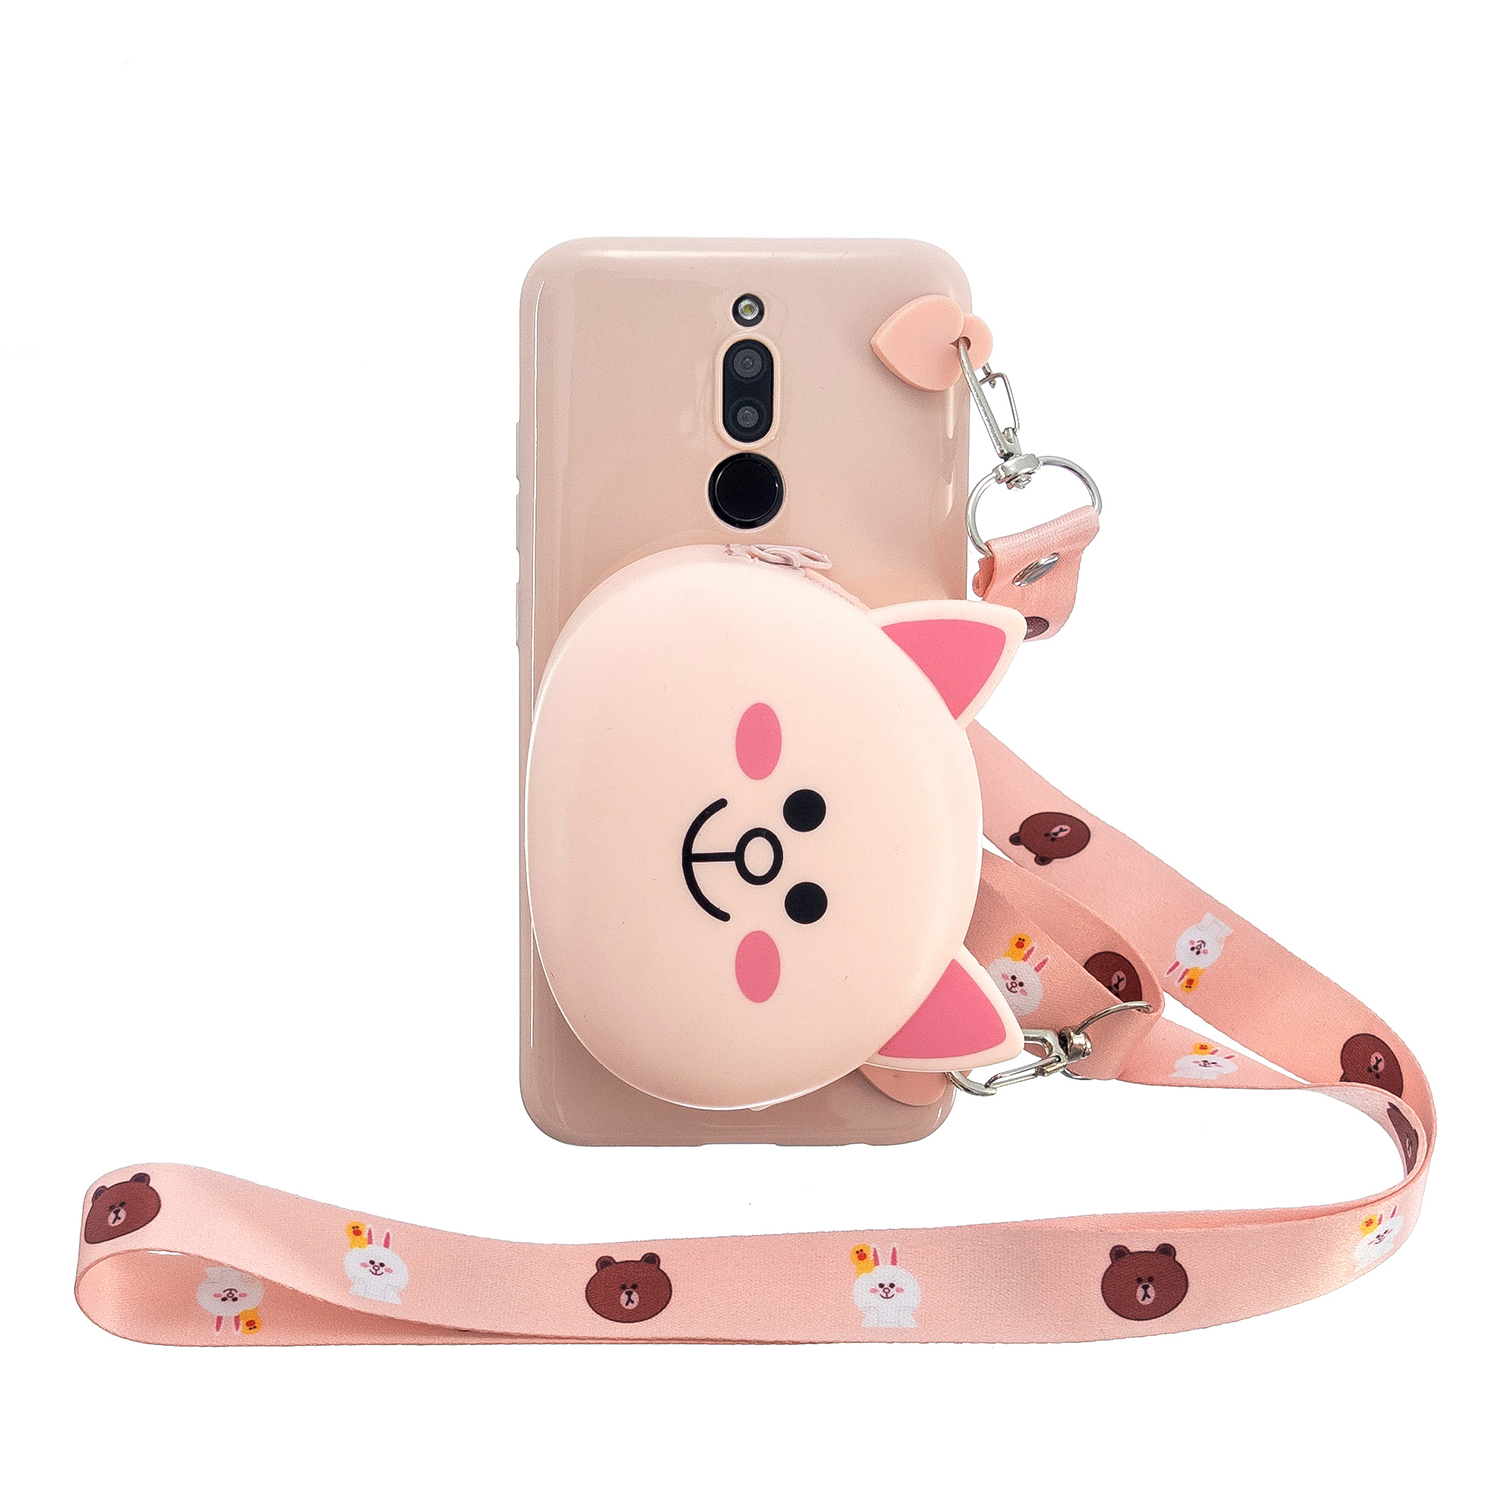 For Redmi 8/Redmi 8A Case Mobile Phone Shell Shockproof Cellphone TPU Cover with Cartoon Cat Pig Panda Coin Purse Lovely Shoulder Starp  Pink